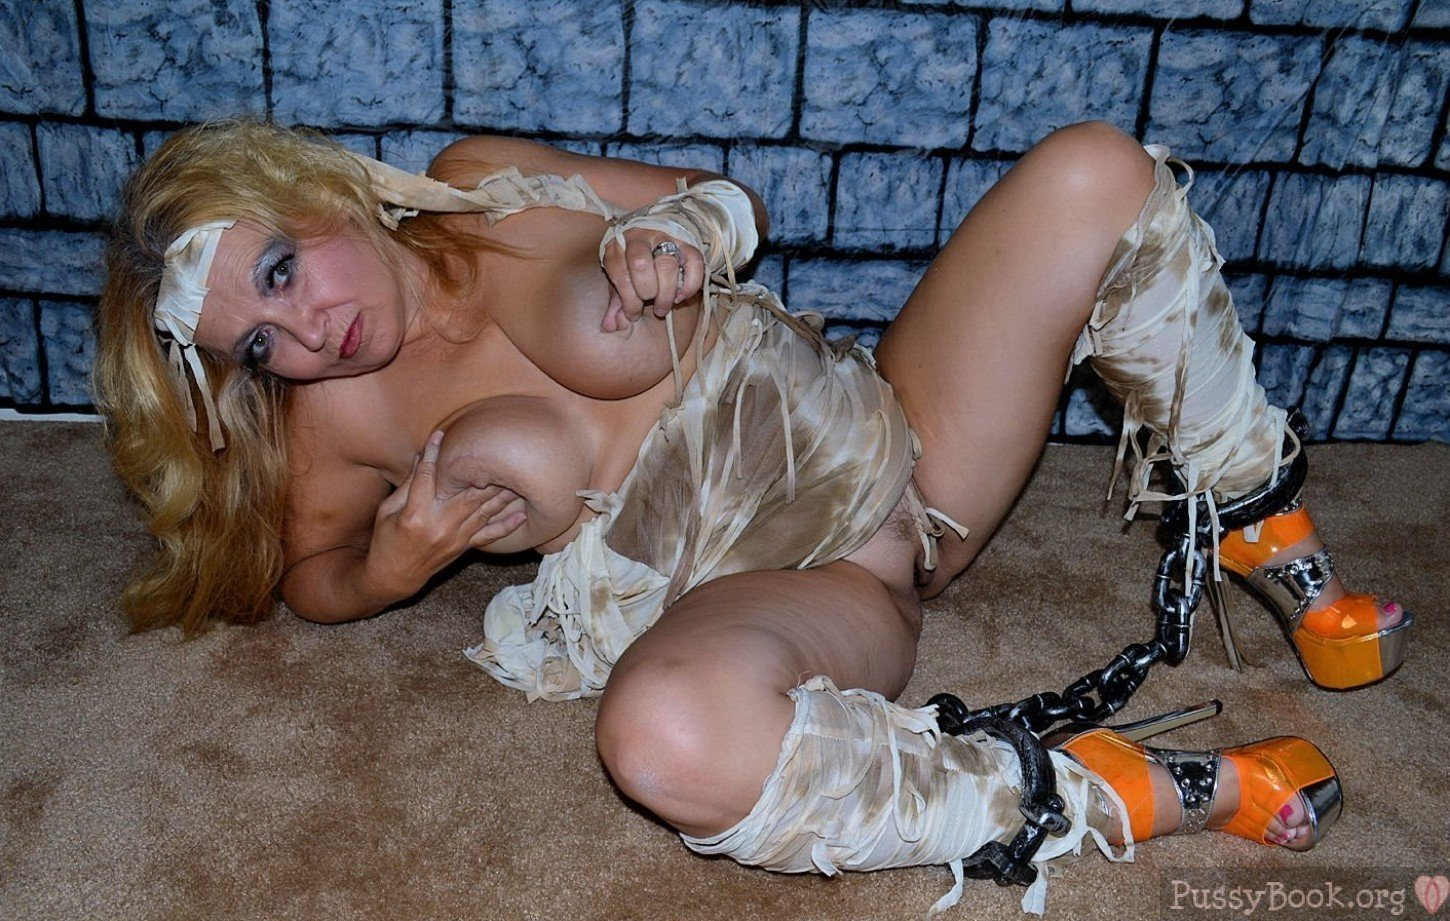 Halloween pussy pics adult gallery